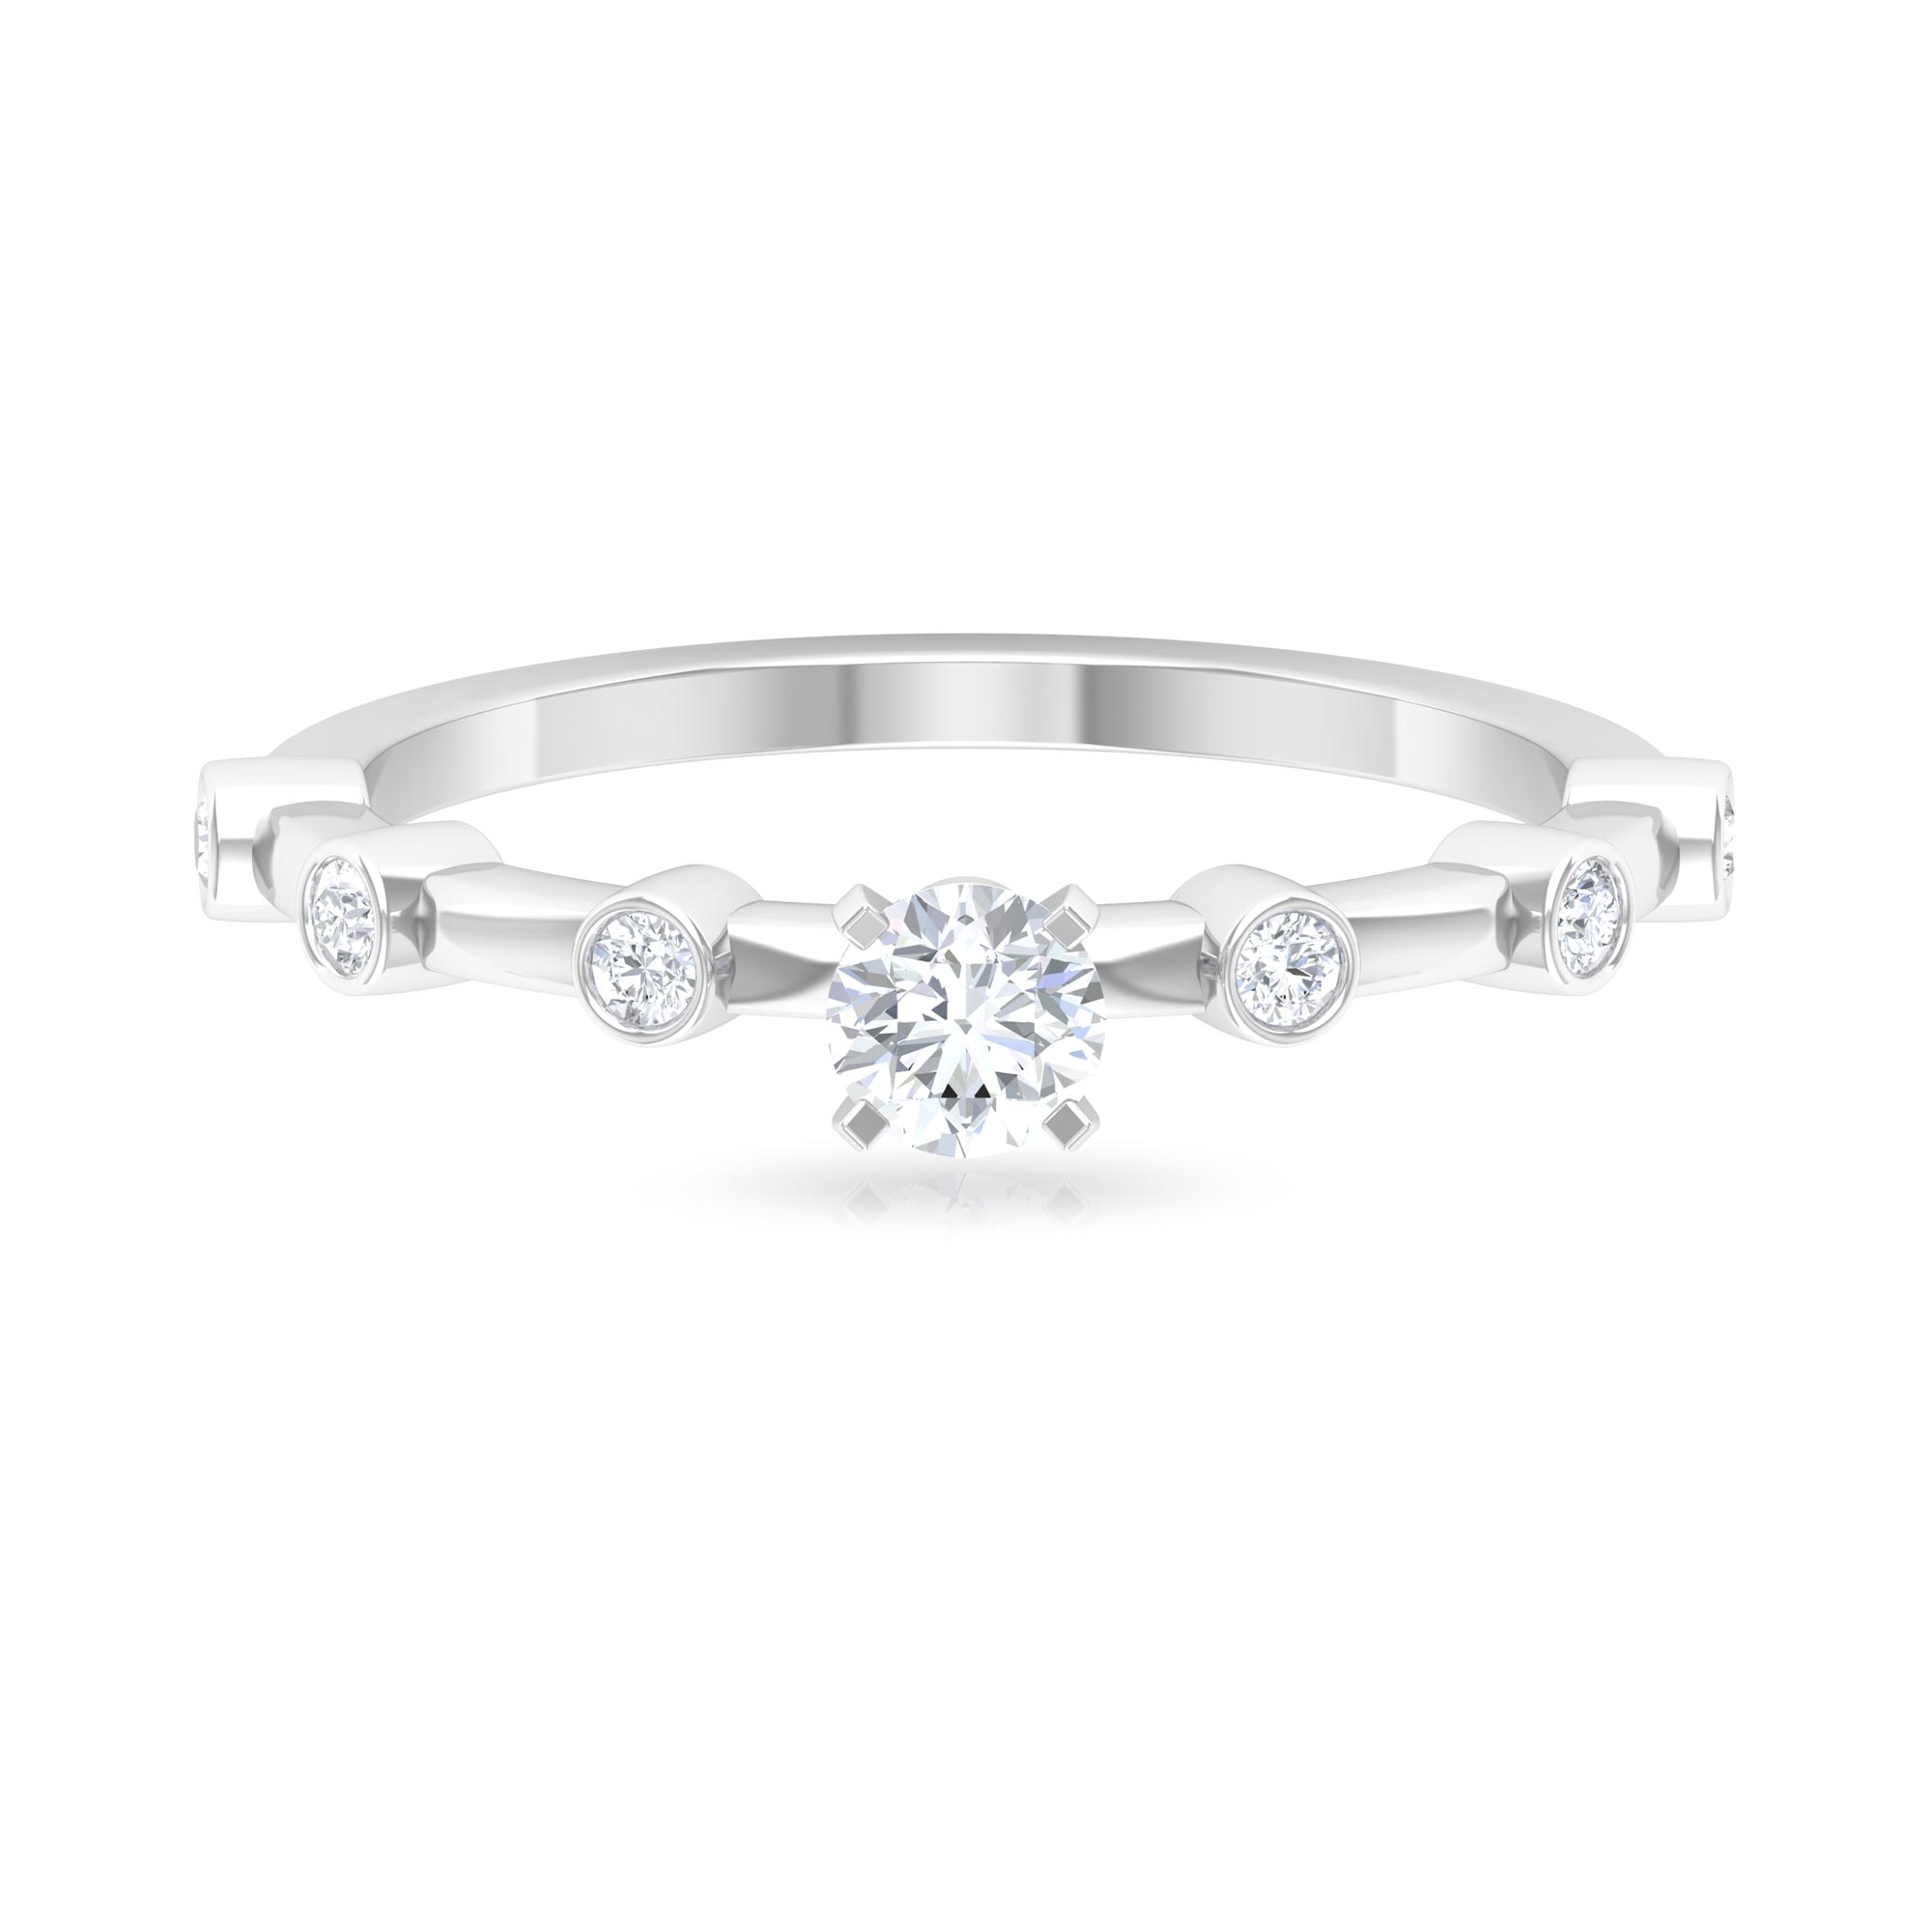 1/2 CT Round Cut Diamond Solitaire Ring in Peg Head Setting with Spaced Set Side Stones